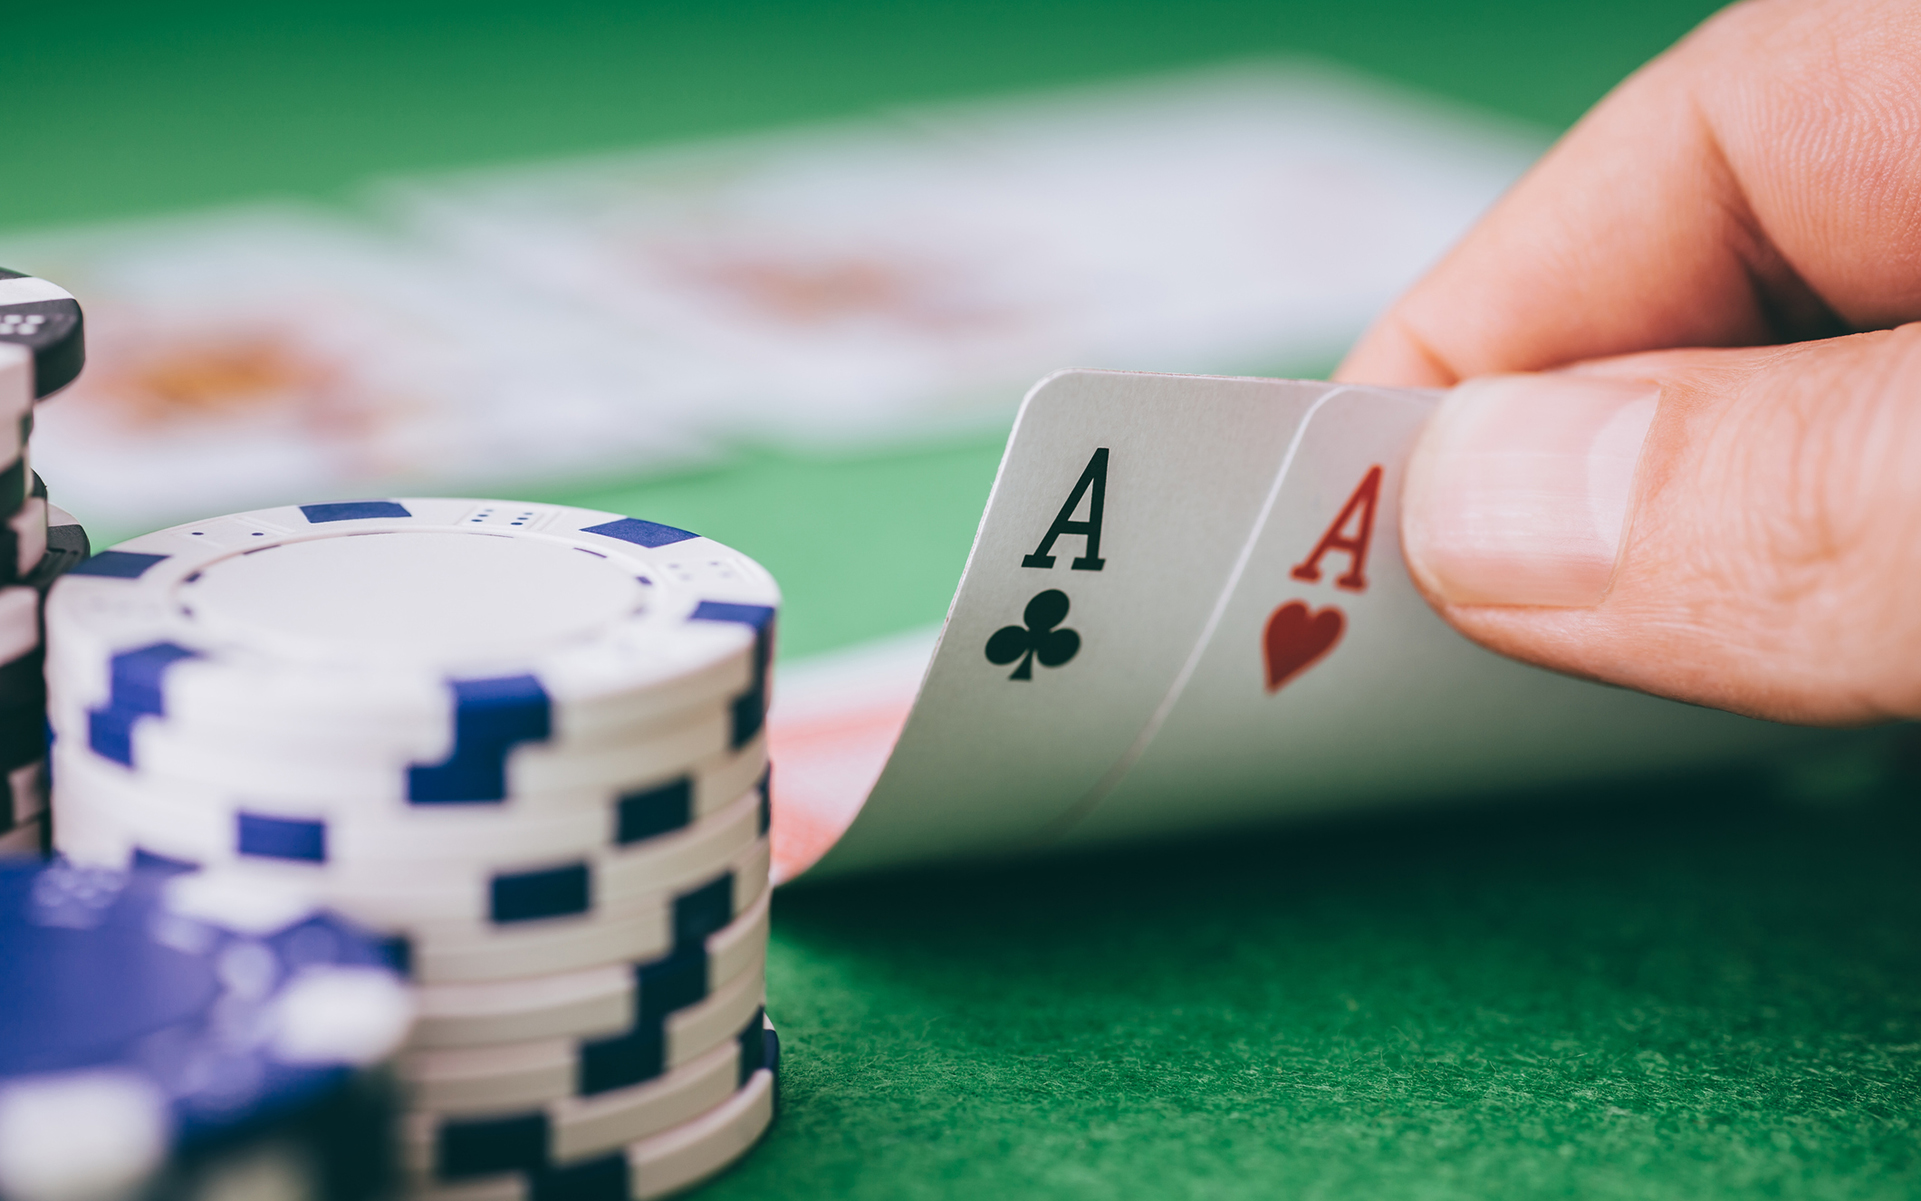 Launch Your Poker Business - Initial Investments and Useful Poker Software